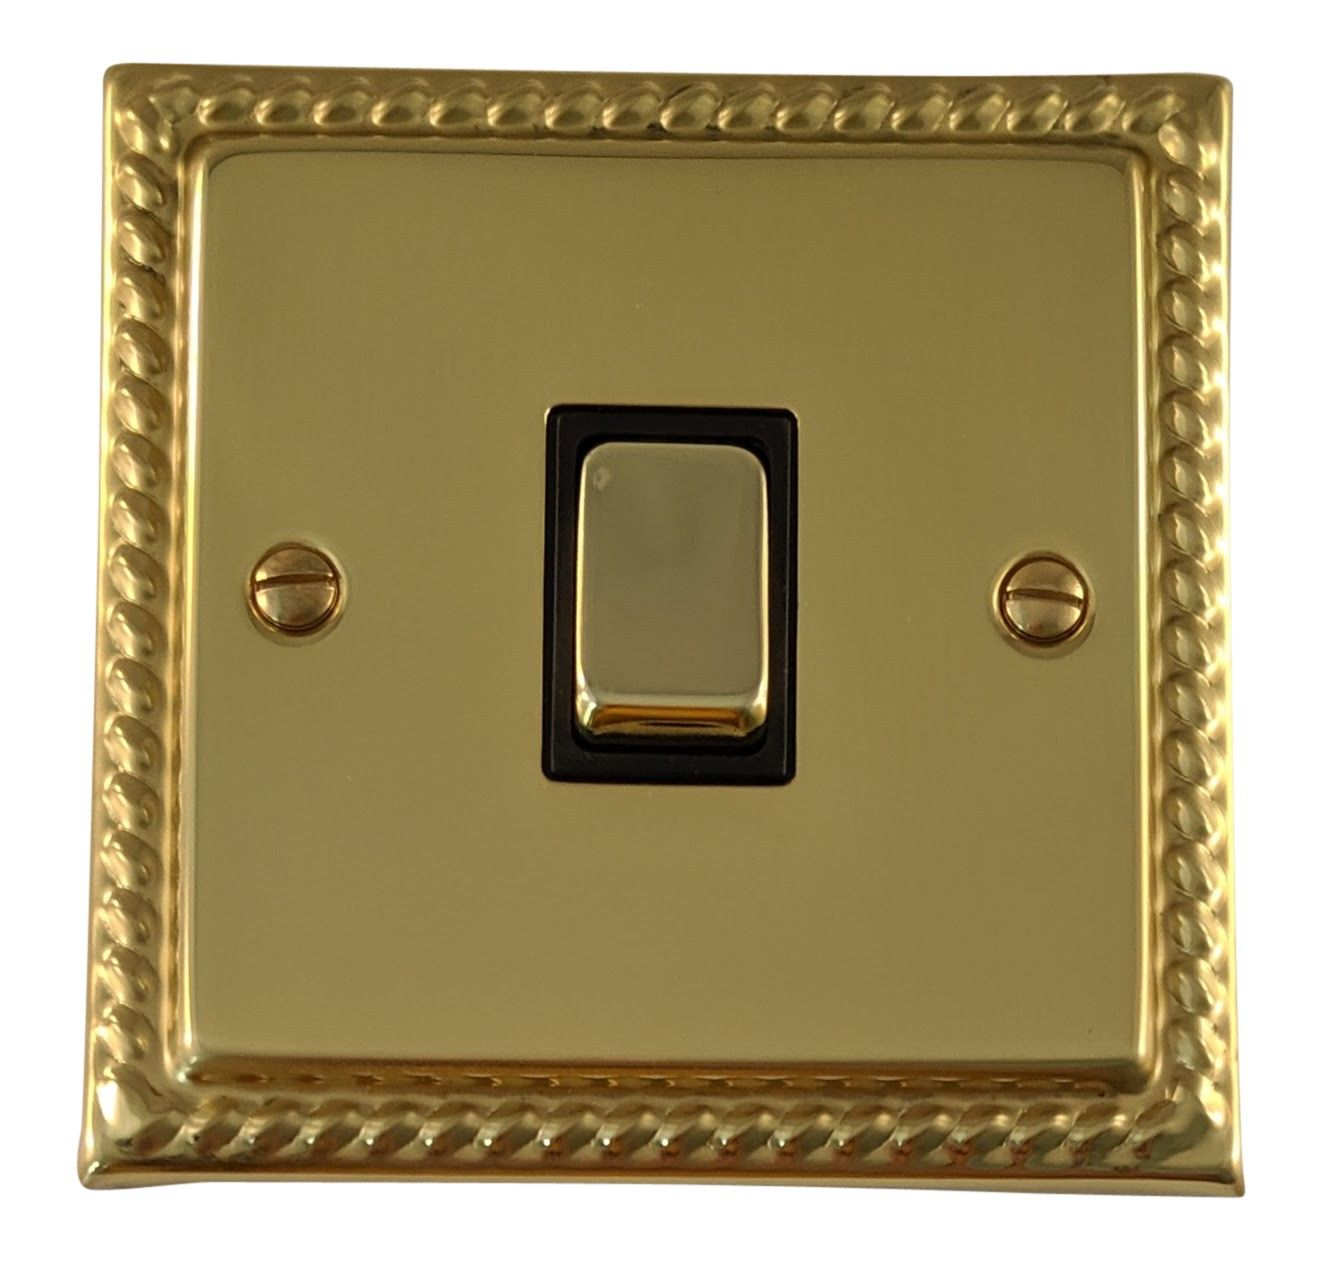 G&H MB301 Monarch Roped Polished Brass 1 Gang 1 or 2 Way Rocker Light Switch